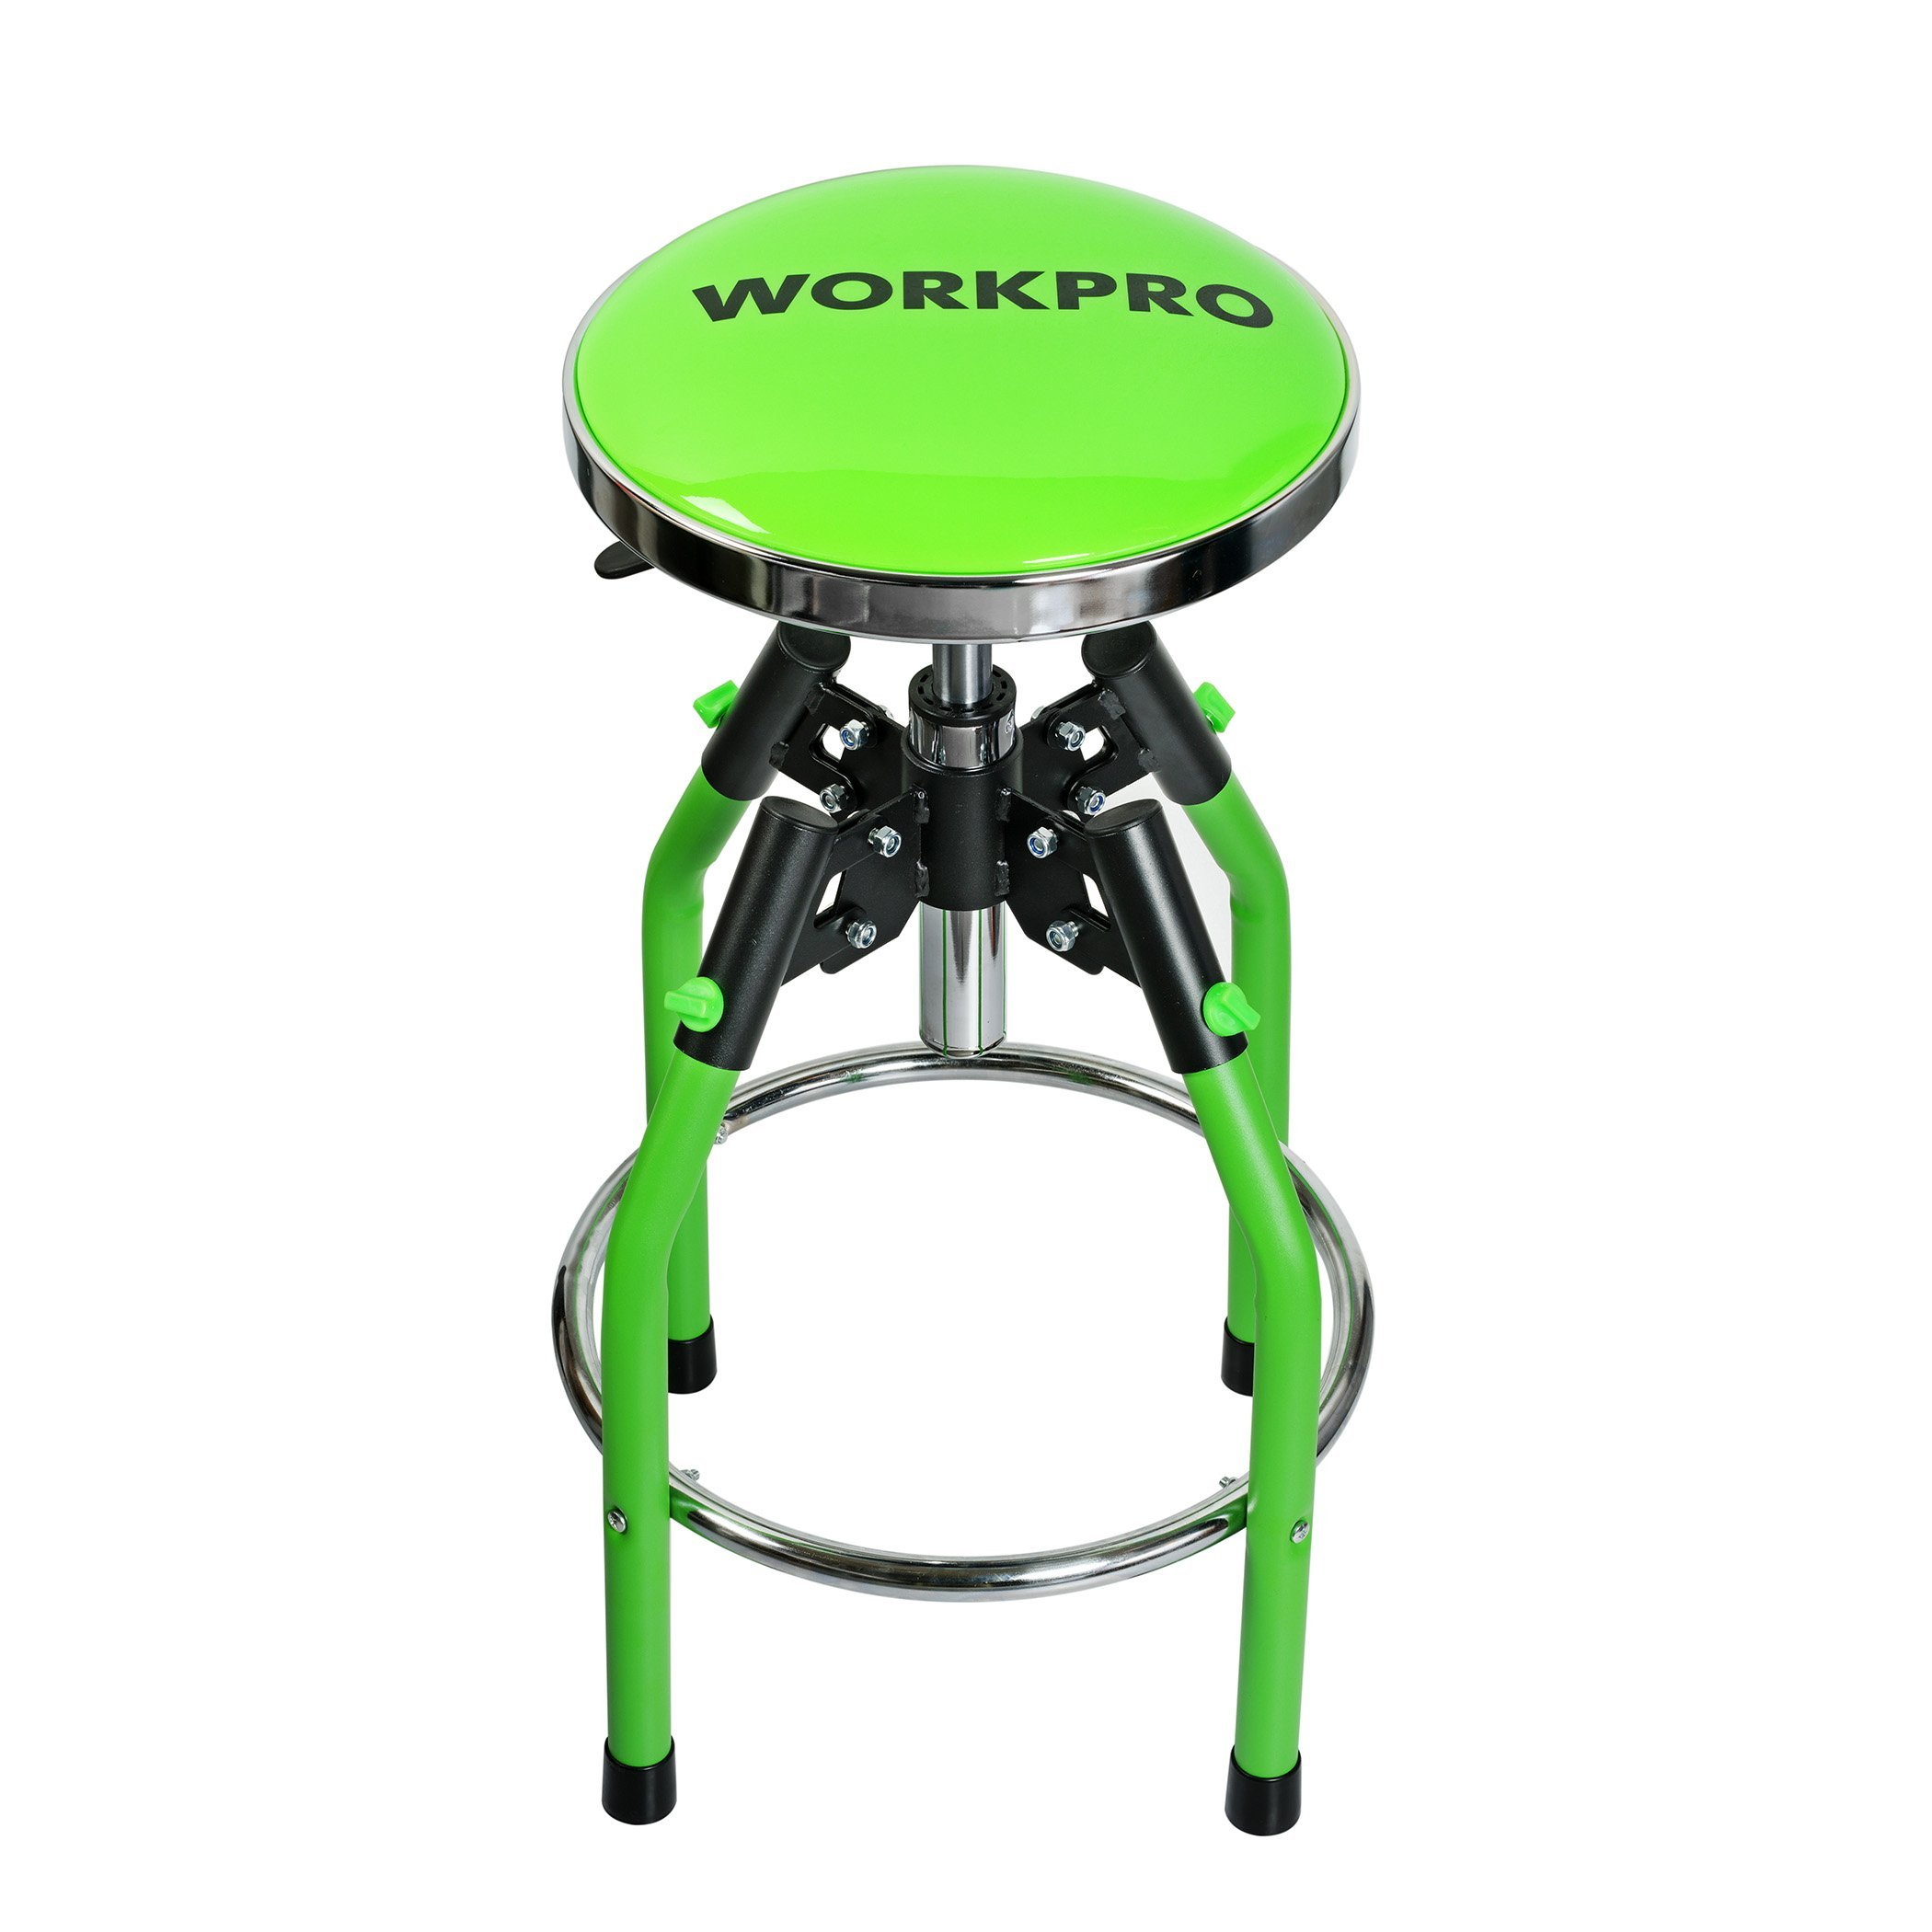 WORKPRO Heavy Duty Adjustable Hydraulic Shop Stool, Green by WORKPRO